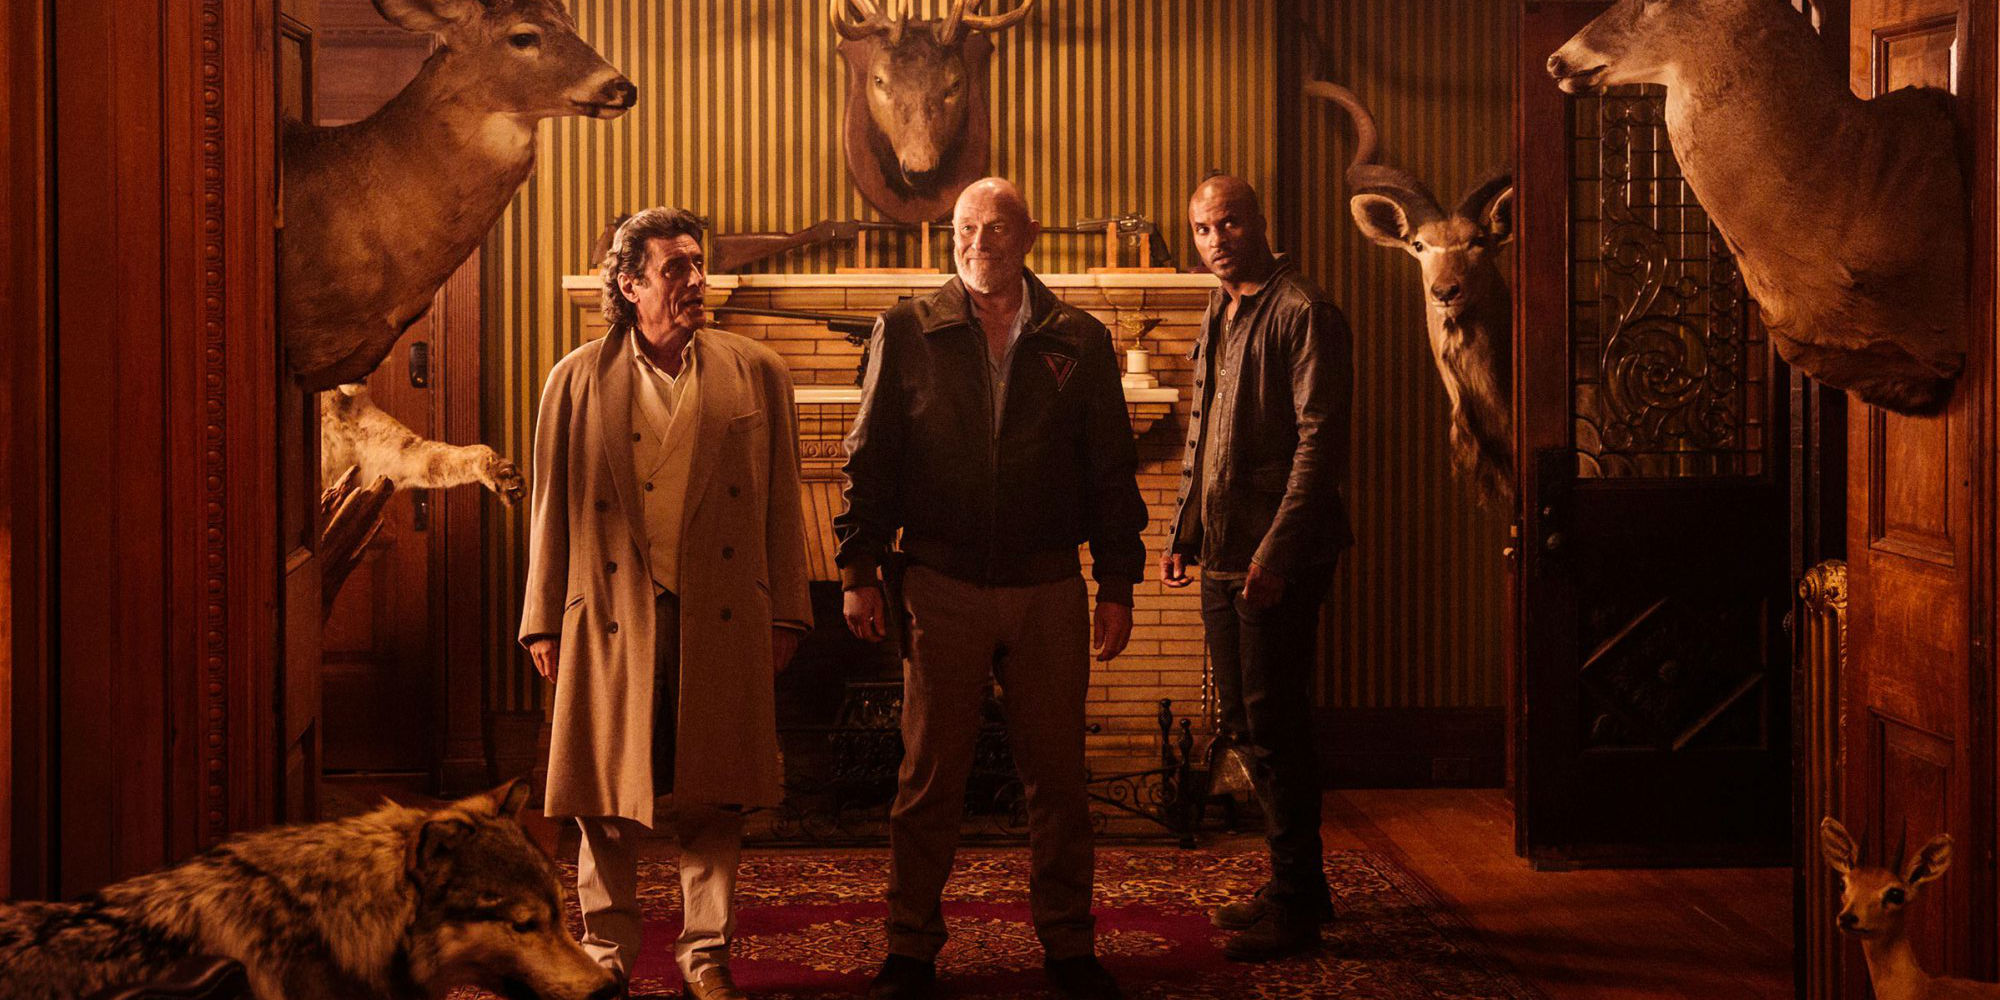 Mr. Wednesday (Ian McShane), Vulcan (Corbin Brensen) and Shadow Moon (Ricky Whittle) in American Gods